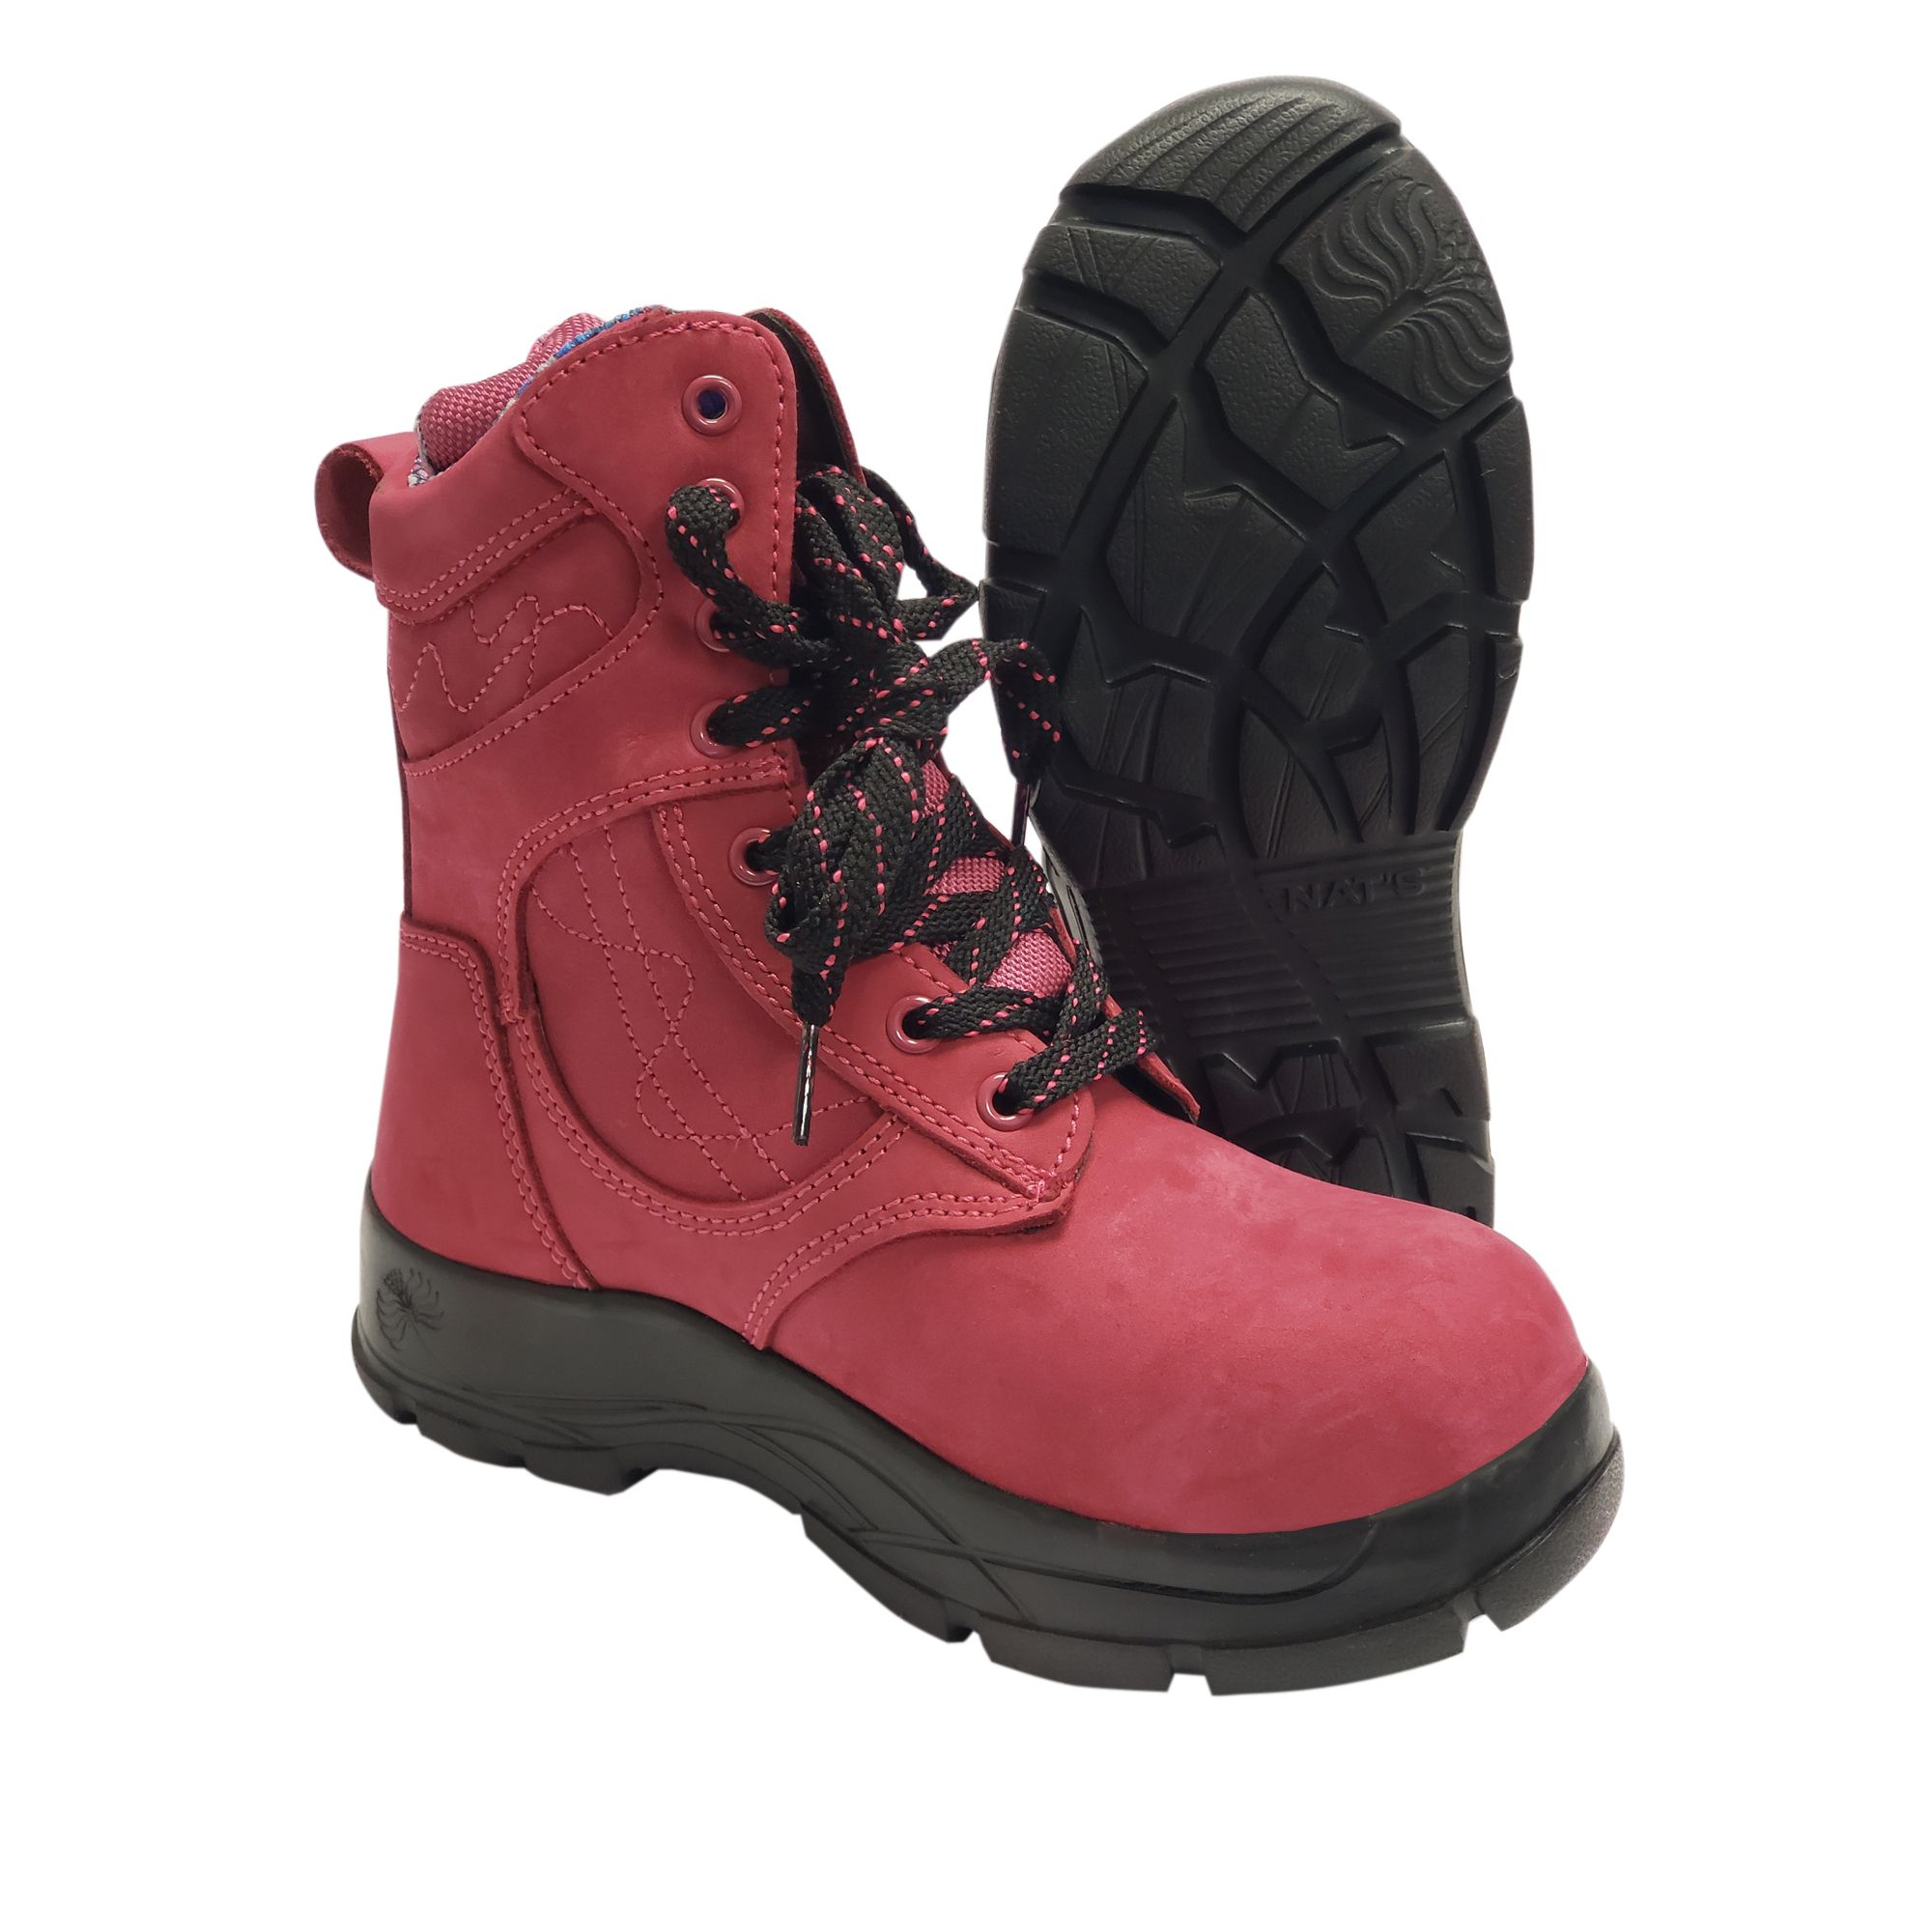 8 Inch Ultra Light Work Boot With Steel Toe Raspberry Boots Light Work Boots Steel Toe